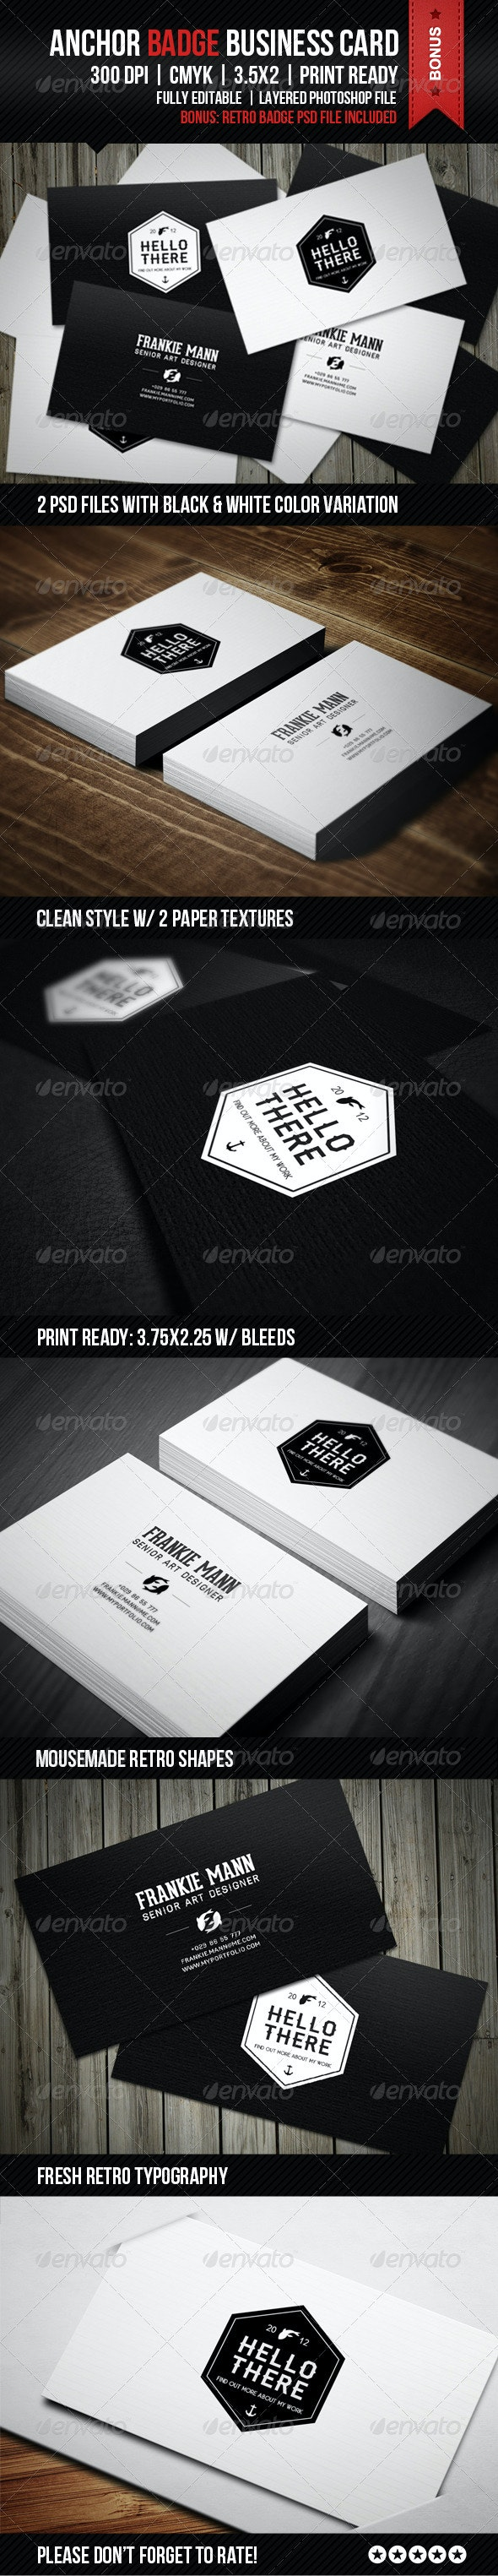 Anchor Badge Business Card - Creative Business Cards